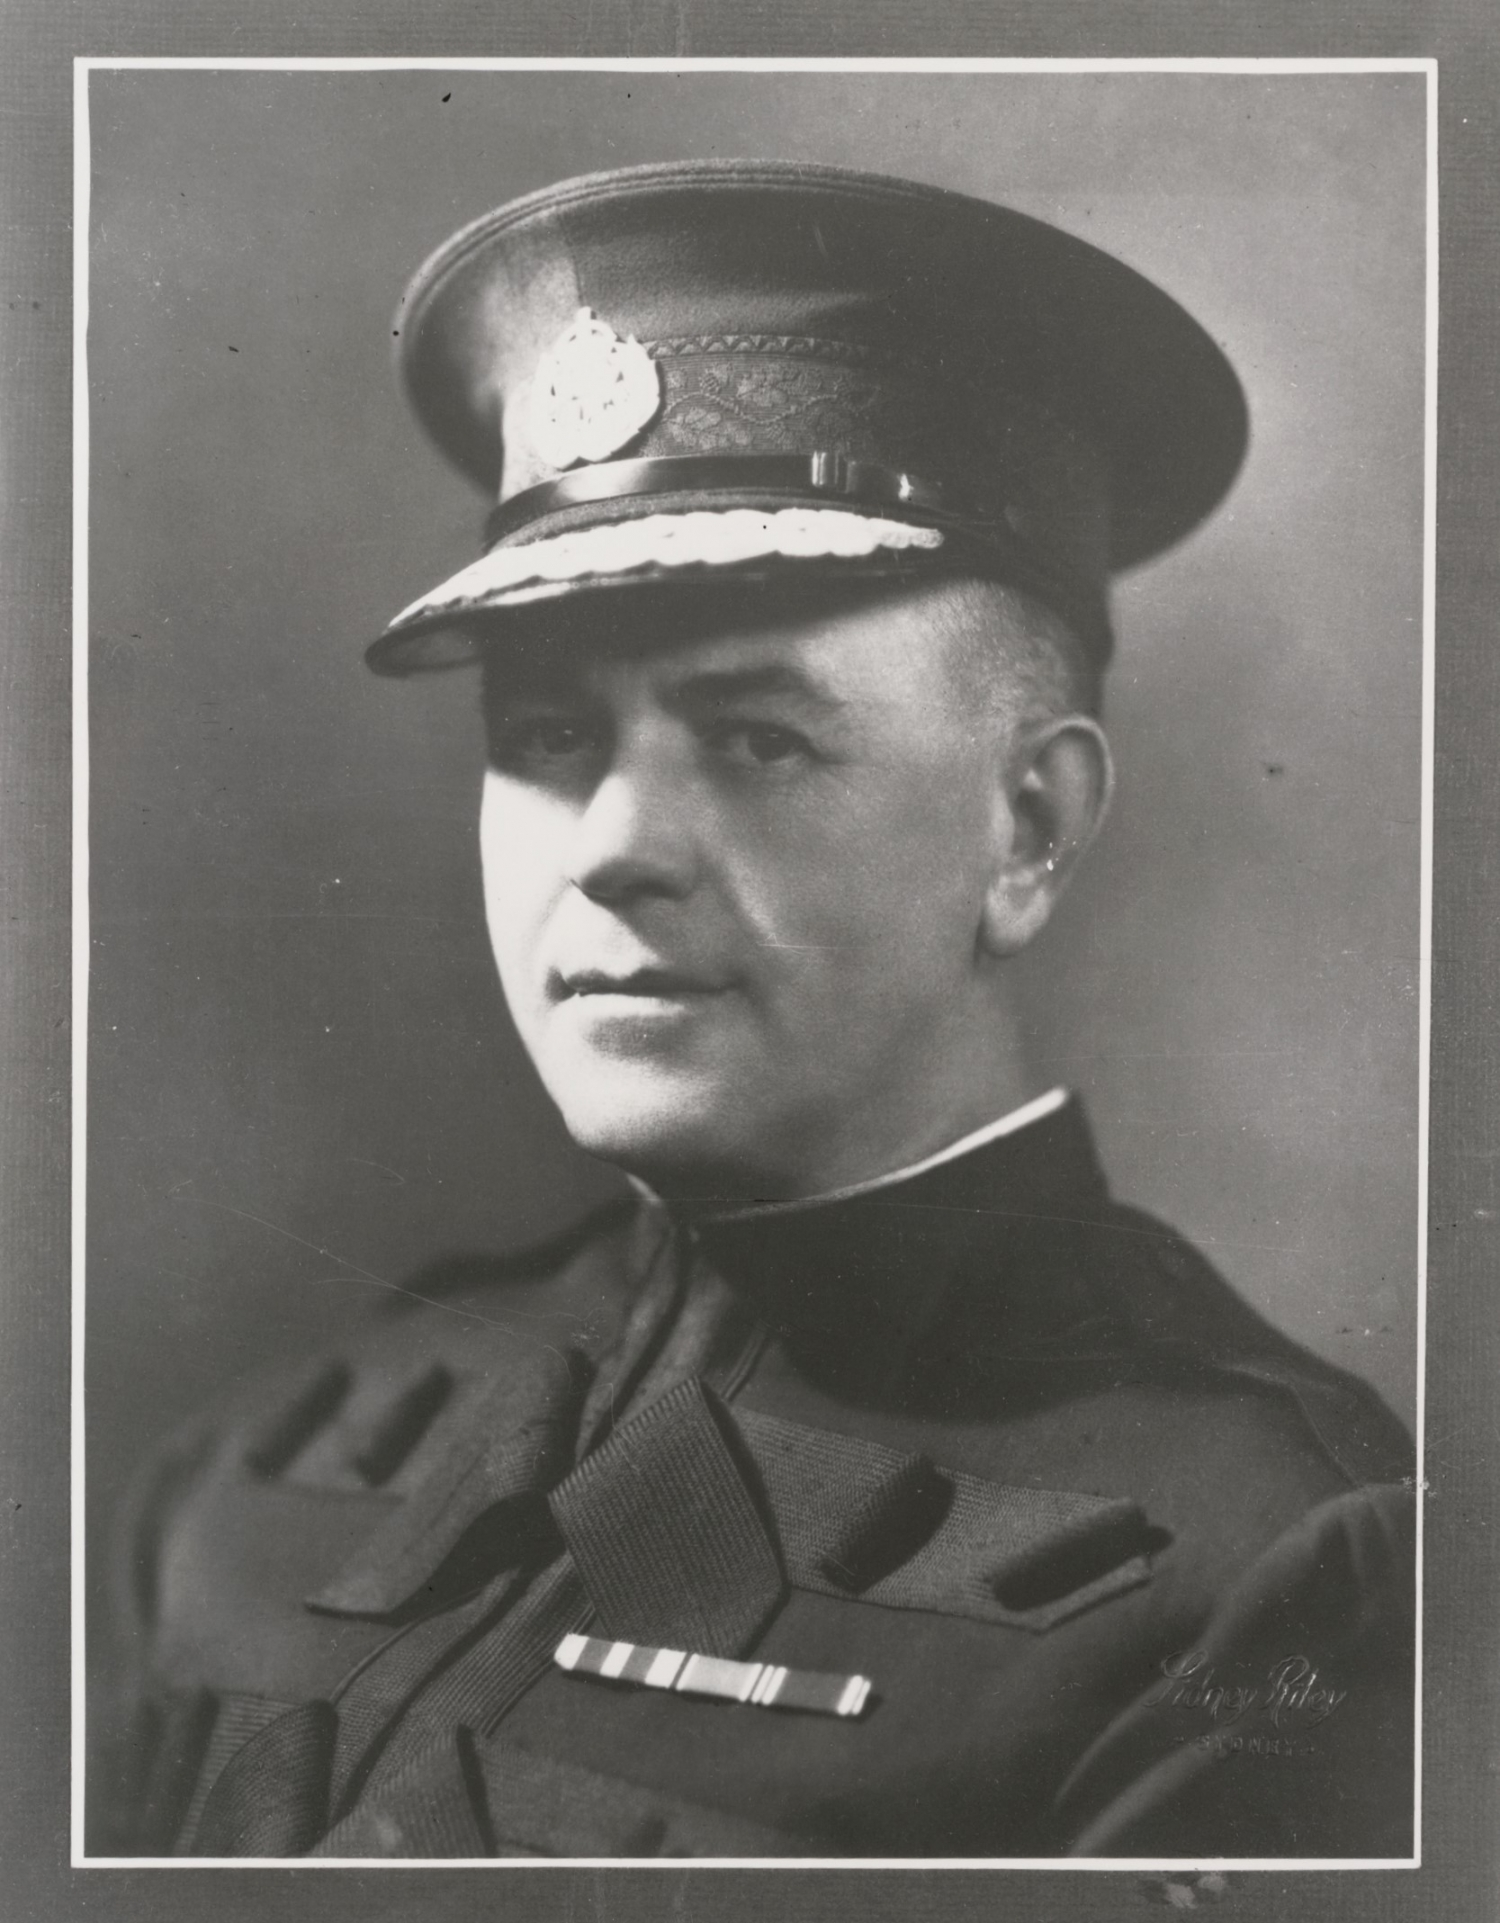 Black and white portrait of man in uniform.